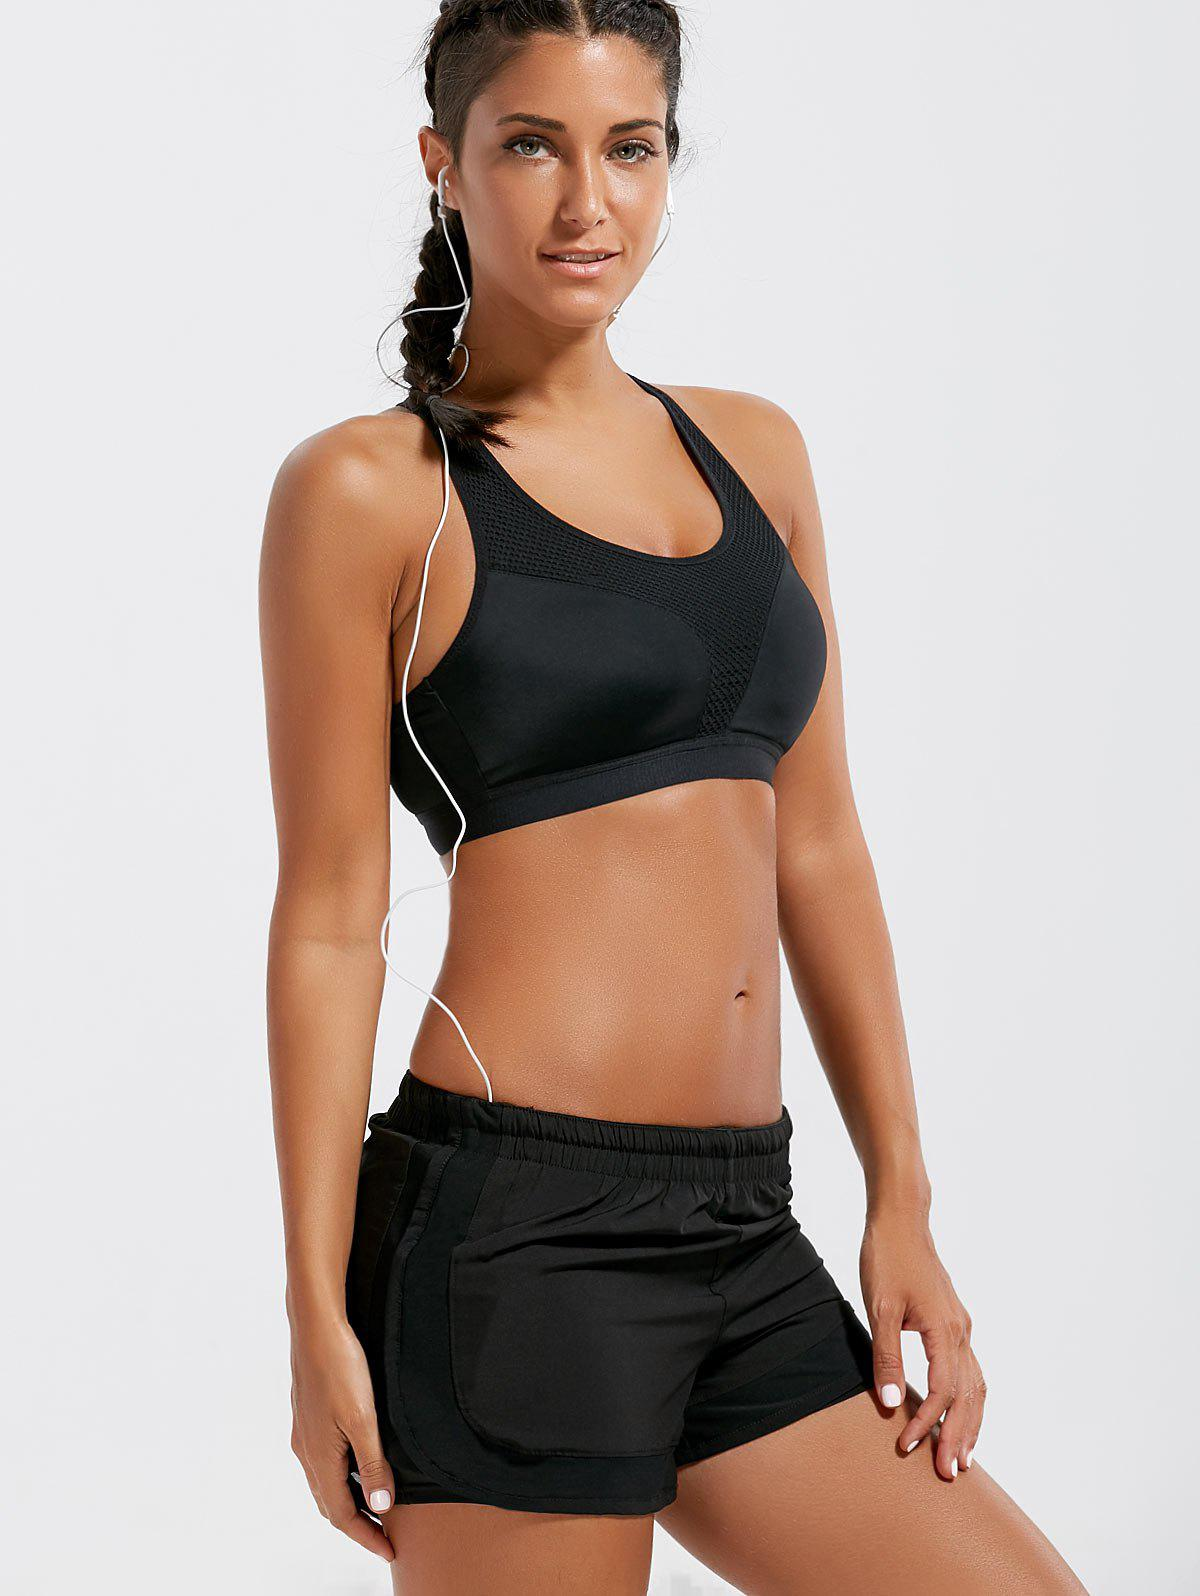 Padded Criss Cross Strappy Sports Bra - BLACK S